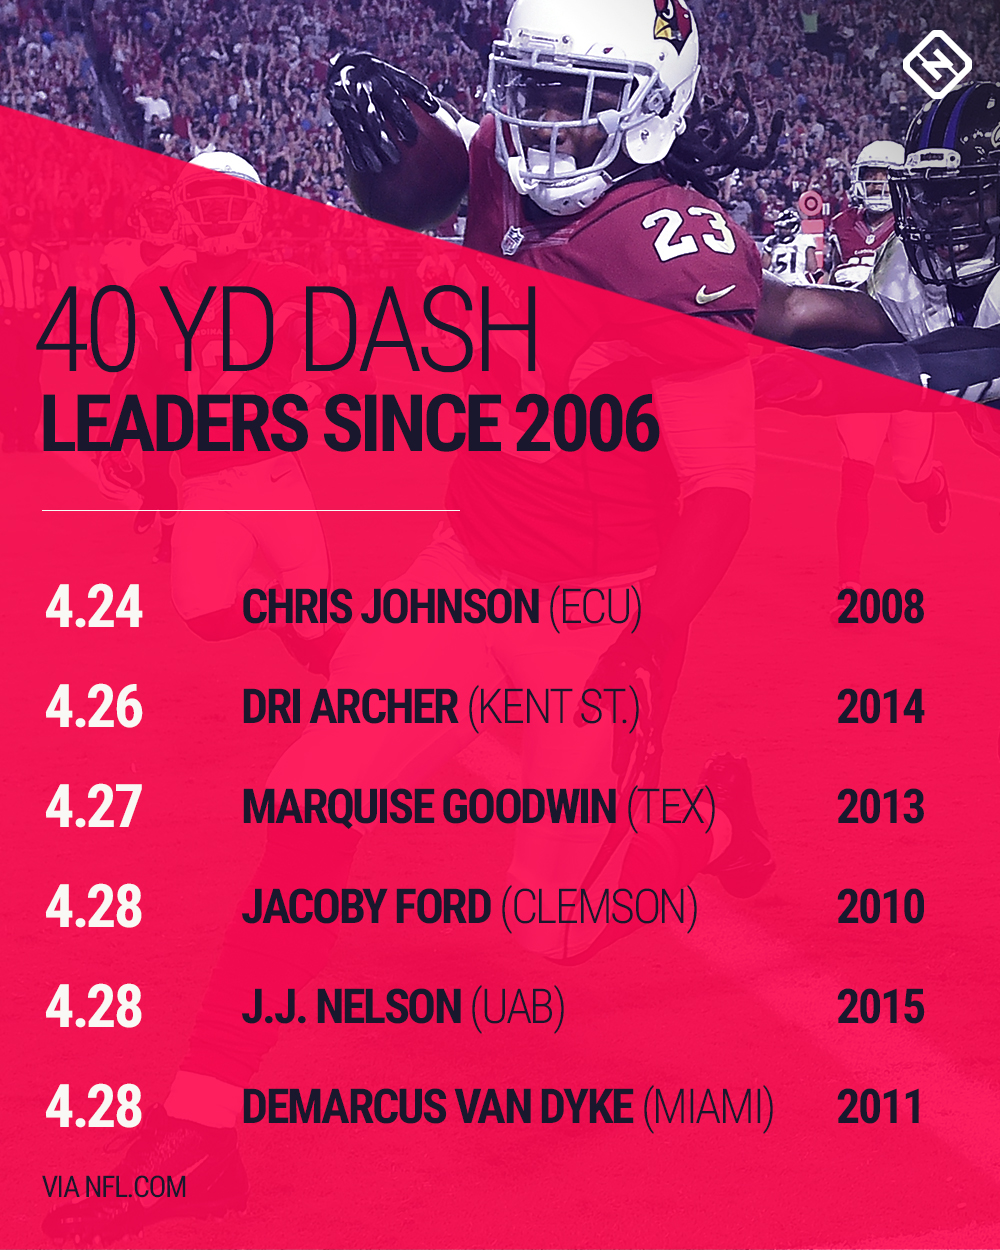 This is the fastest sprint in NFL Combine history